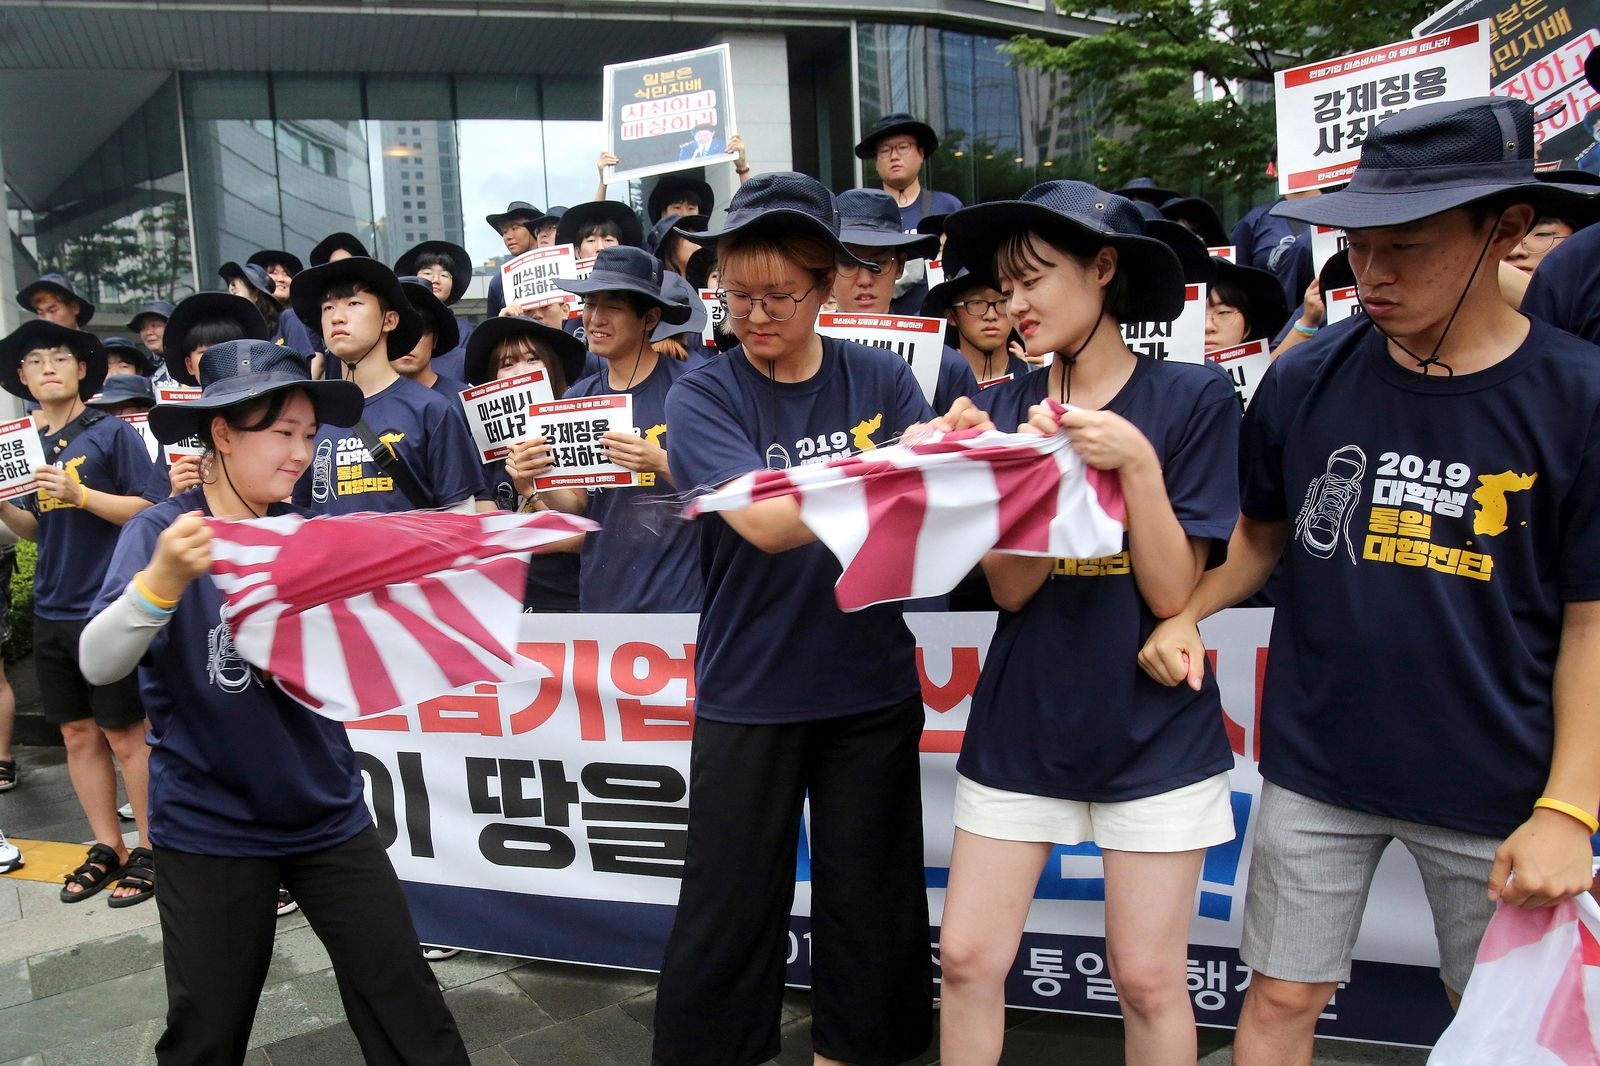 South Korean college students tear a banner showing an image of a Japanese rising sun flag during a rally to denounce Japan's new trade restrictions on South Korea in front of the office of Mitsubishi Corp. in Seoul, South Korea, Wednesday, Aug. 7, 2019.{ } (AP Photo/Ahn Young-joon)